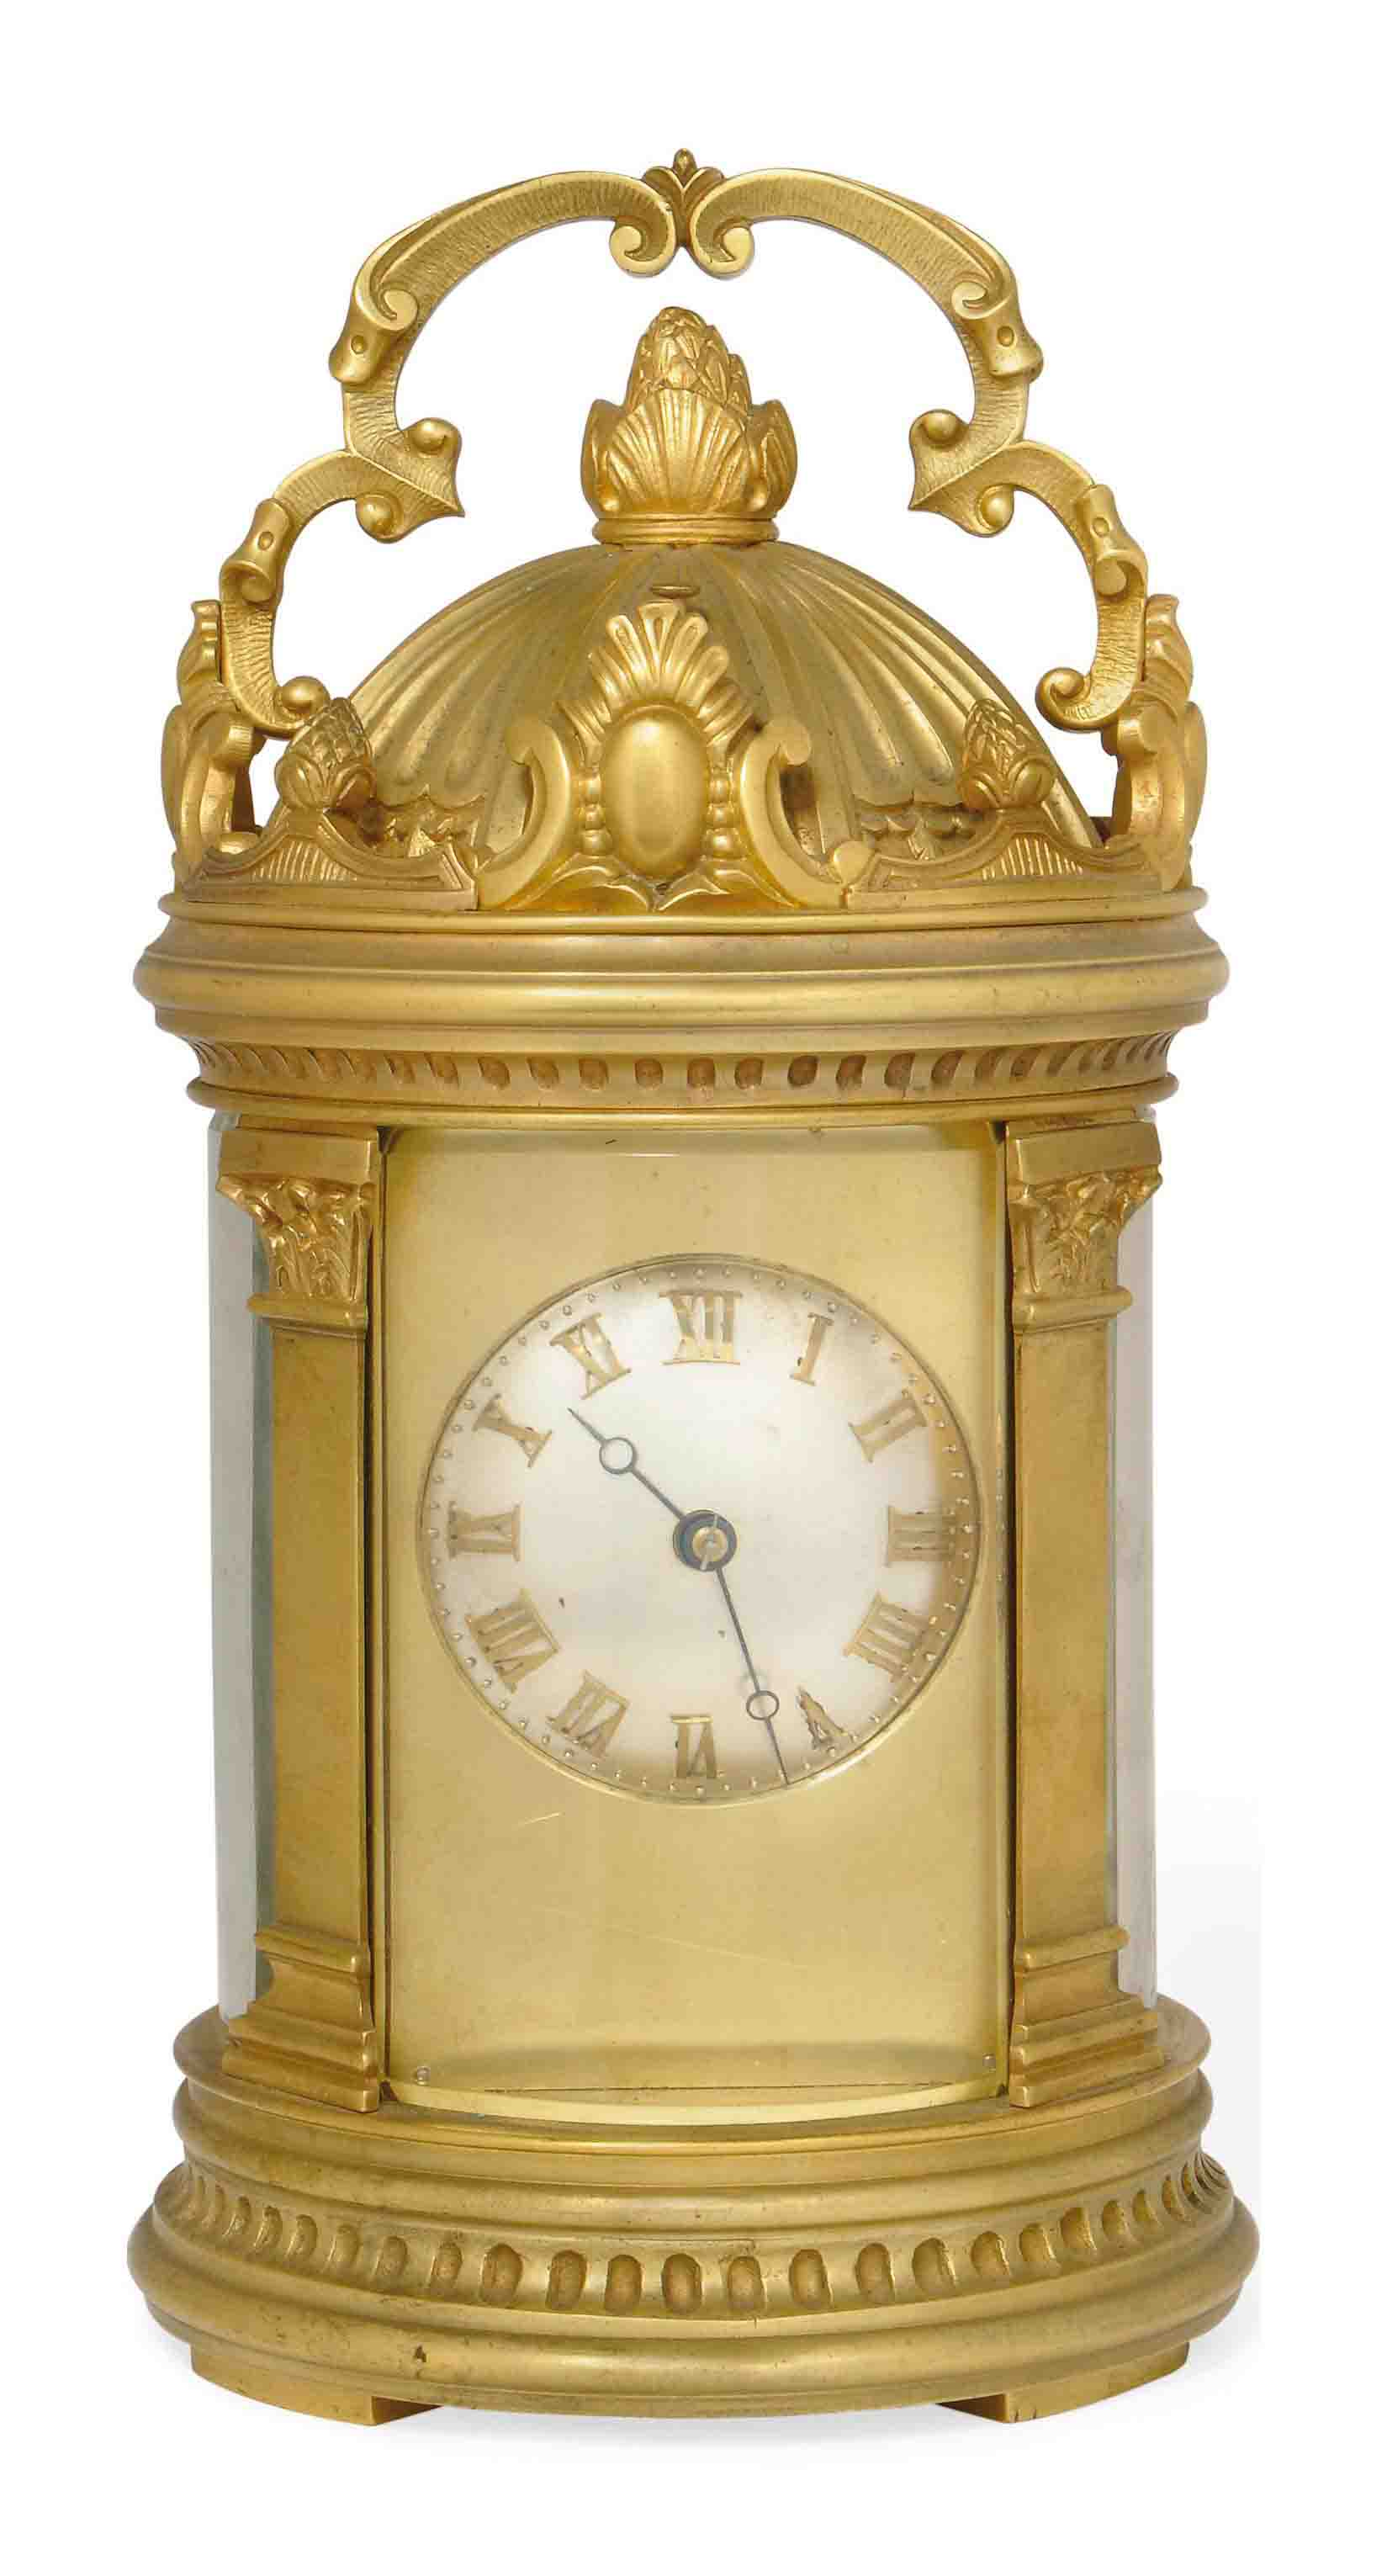 A FRENCH CYLINDRICAL ORMOLU STRIKE-REPEAT CARRIAGE CLOCK